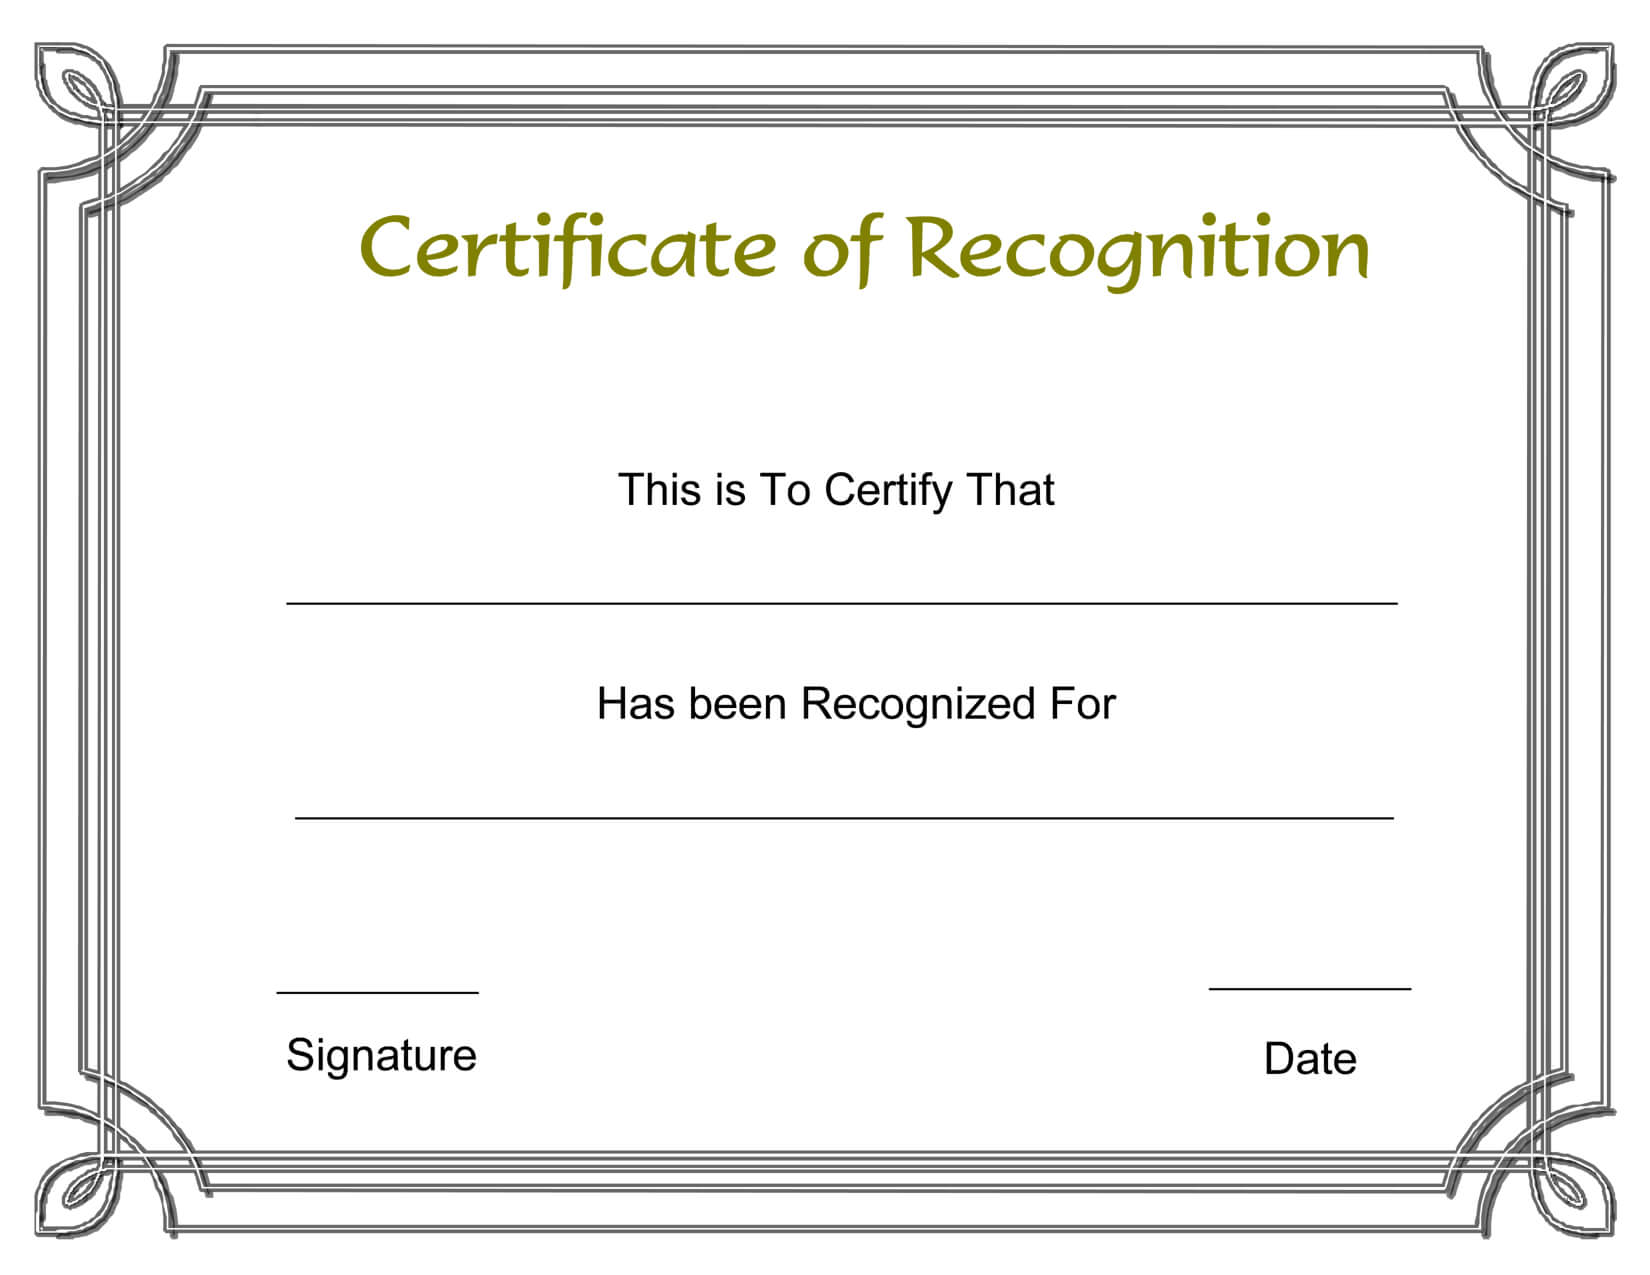 Template Free Award Certificate Templates And Employee for Printable Certificate Of Recognition Templates Free